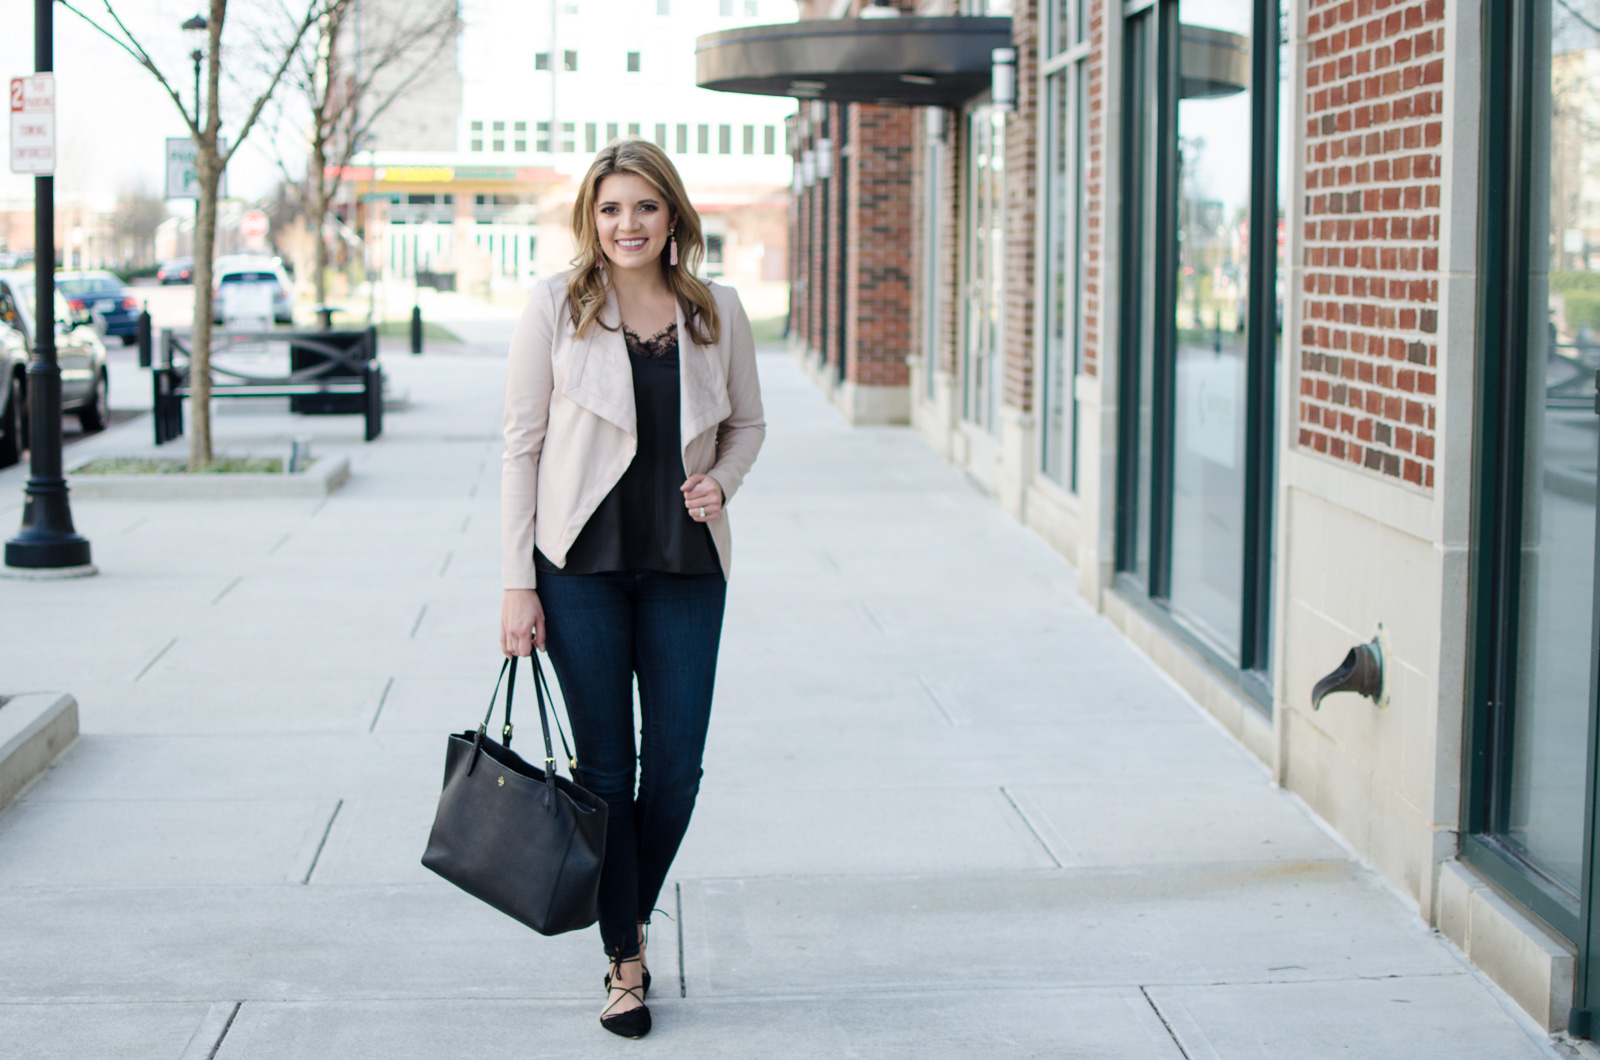 blush leather jacket outfit - blush jacket with black lace camisole. | Click through for more casual outfits or to shop this look! www.bylaurenm.com